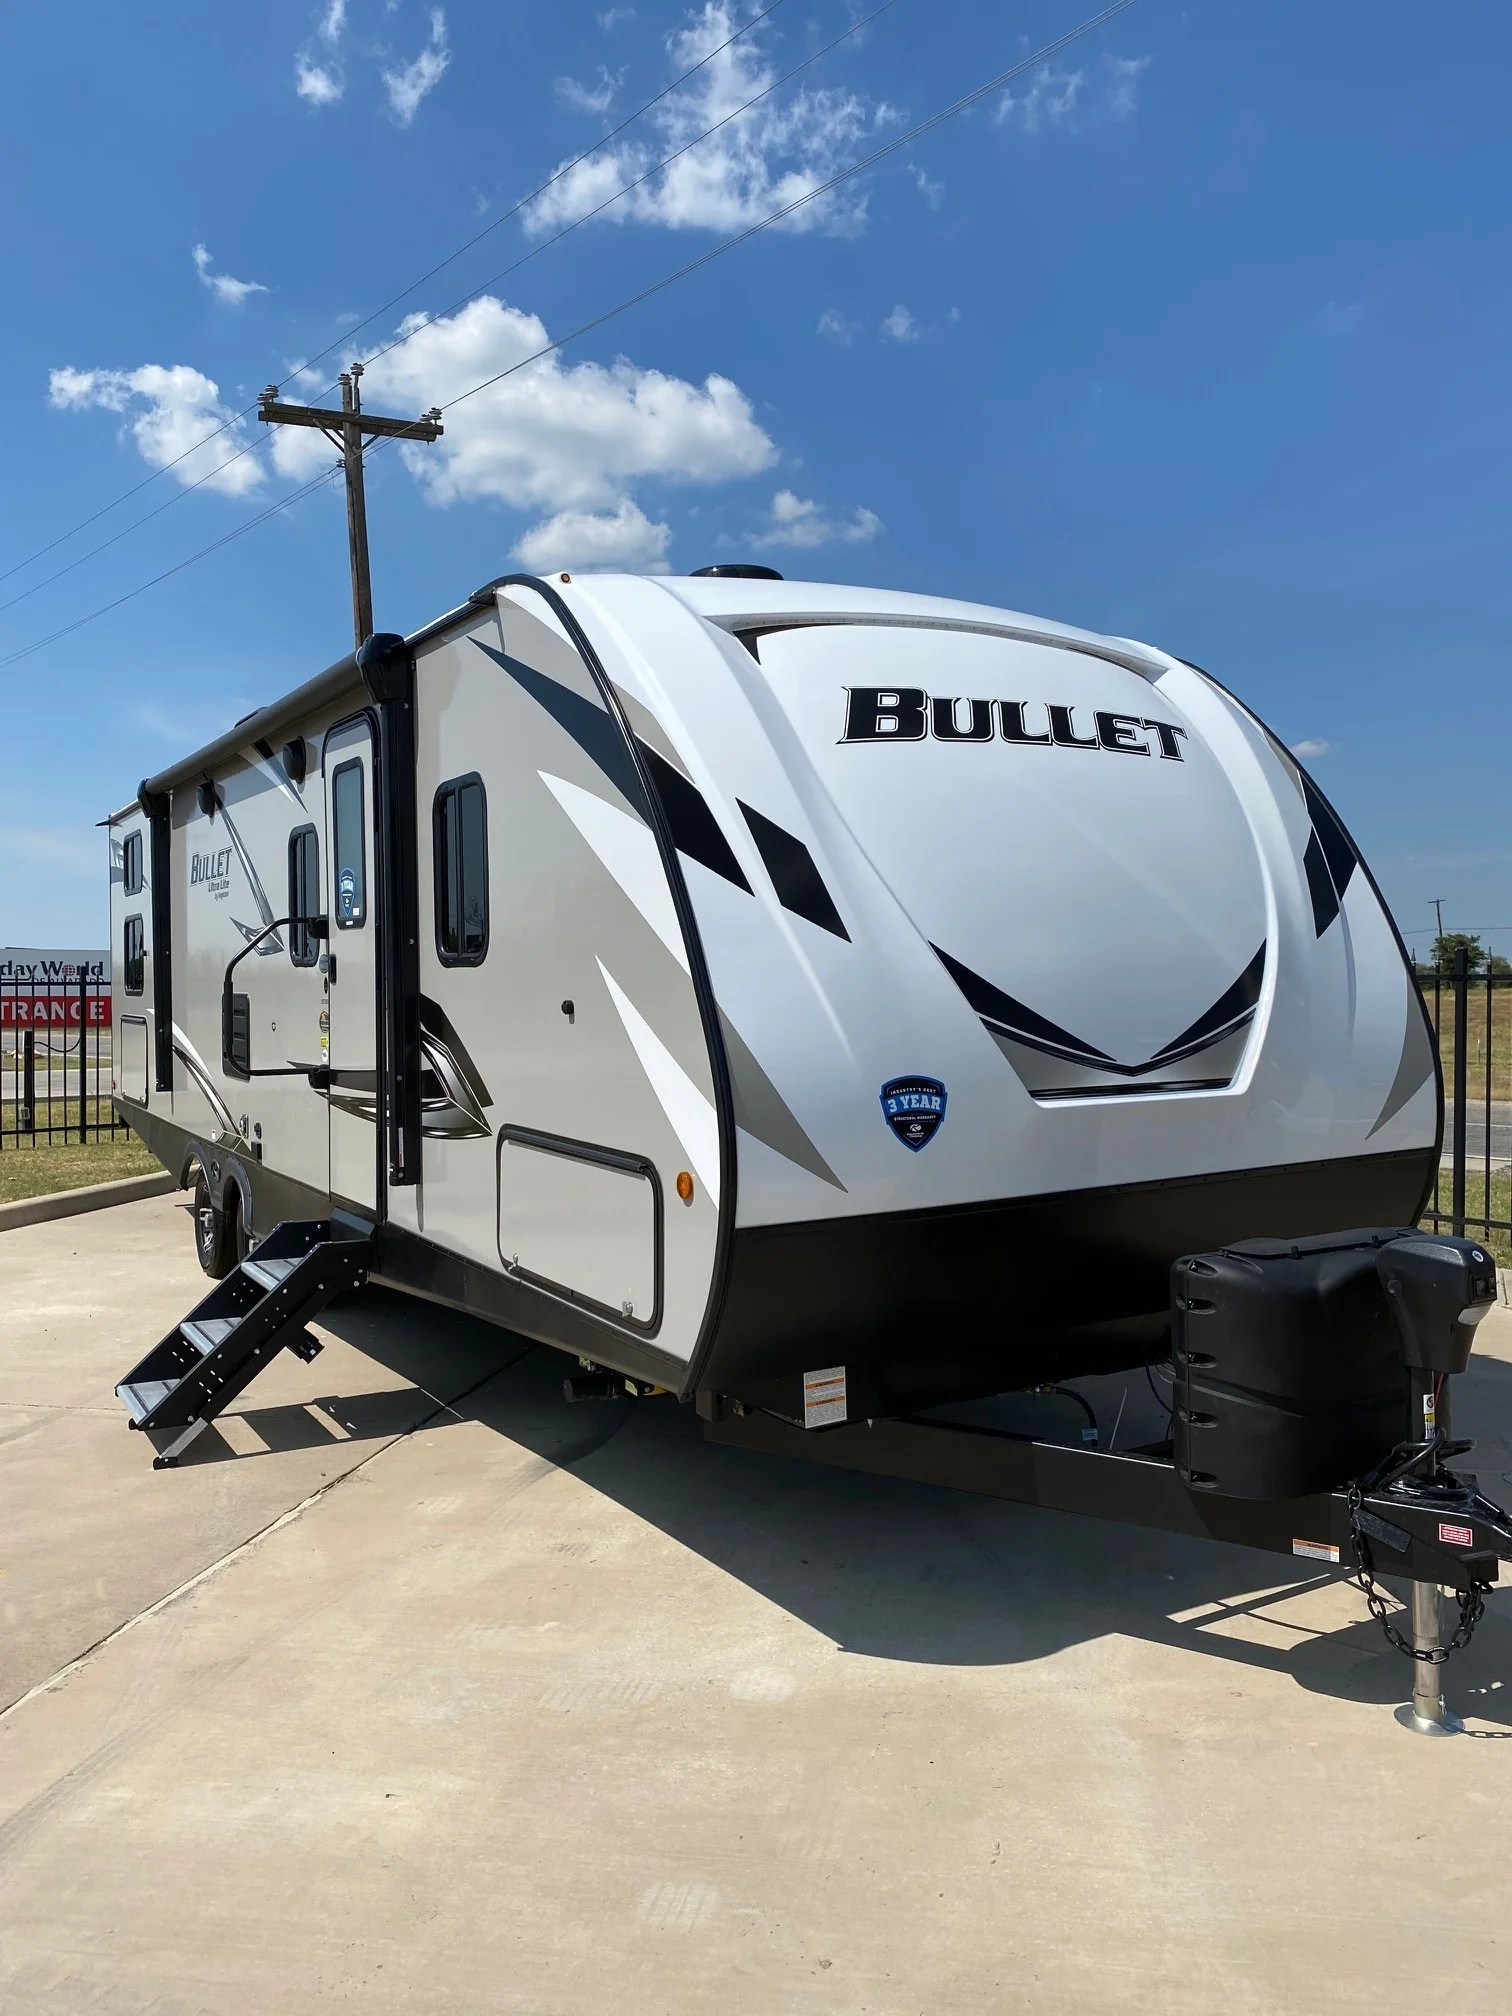 In House Financing Rv Dealers Texas : house, financing, dealers, texas, Holiday, World, Dealerships, Texas, Mexico